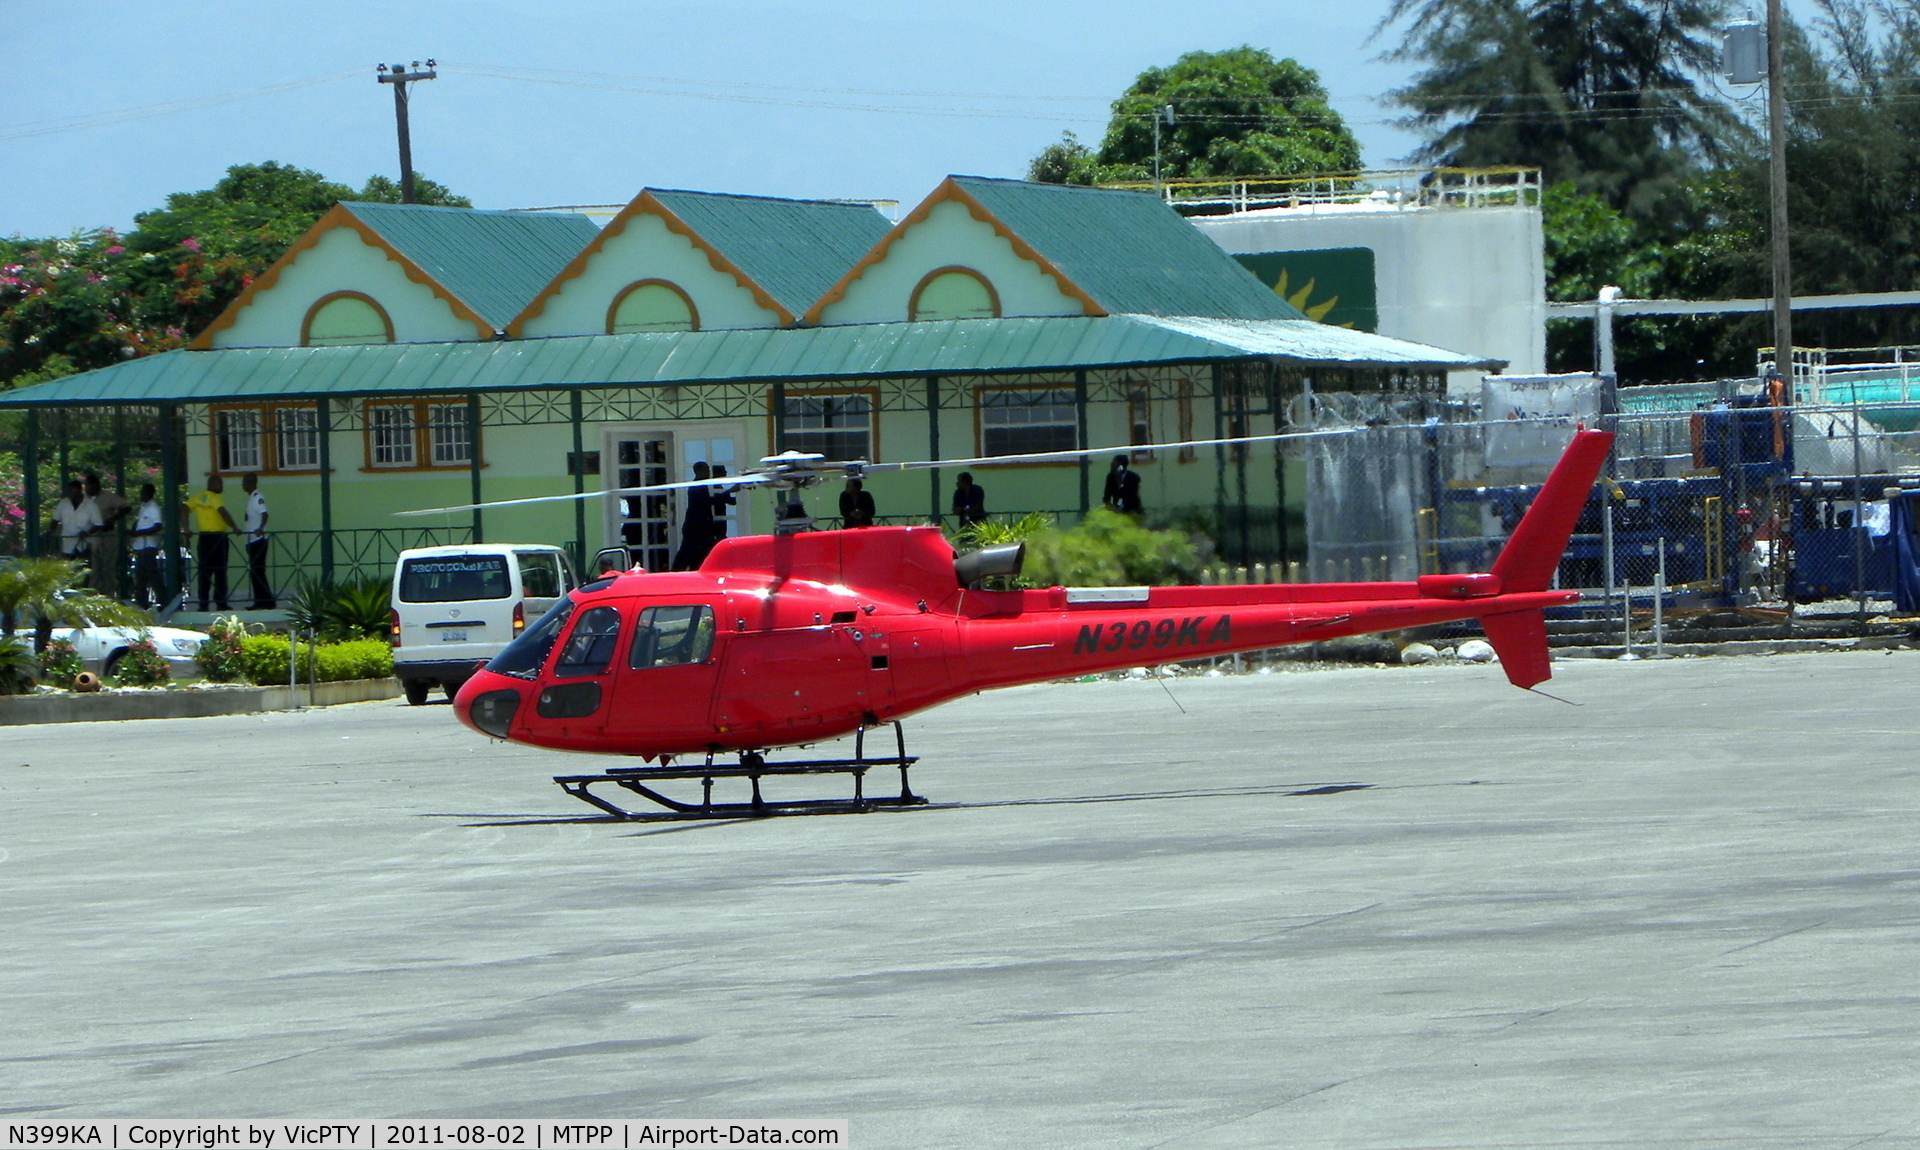 N399KA, 2007 Eurocopter AS-350B-3 Ecureuil C/N 4326, Port au Prince - MTPP, in the back you can see the vip room of this airport